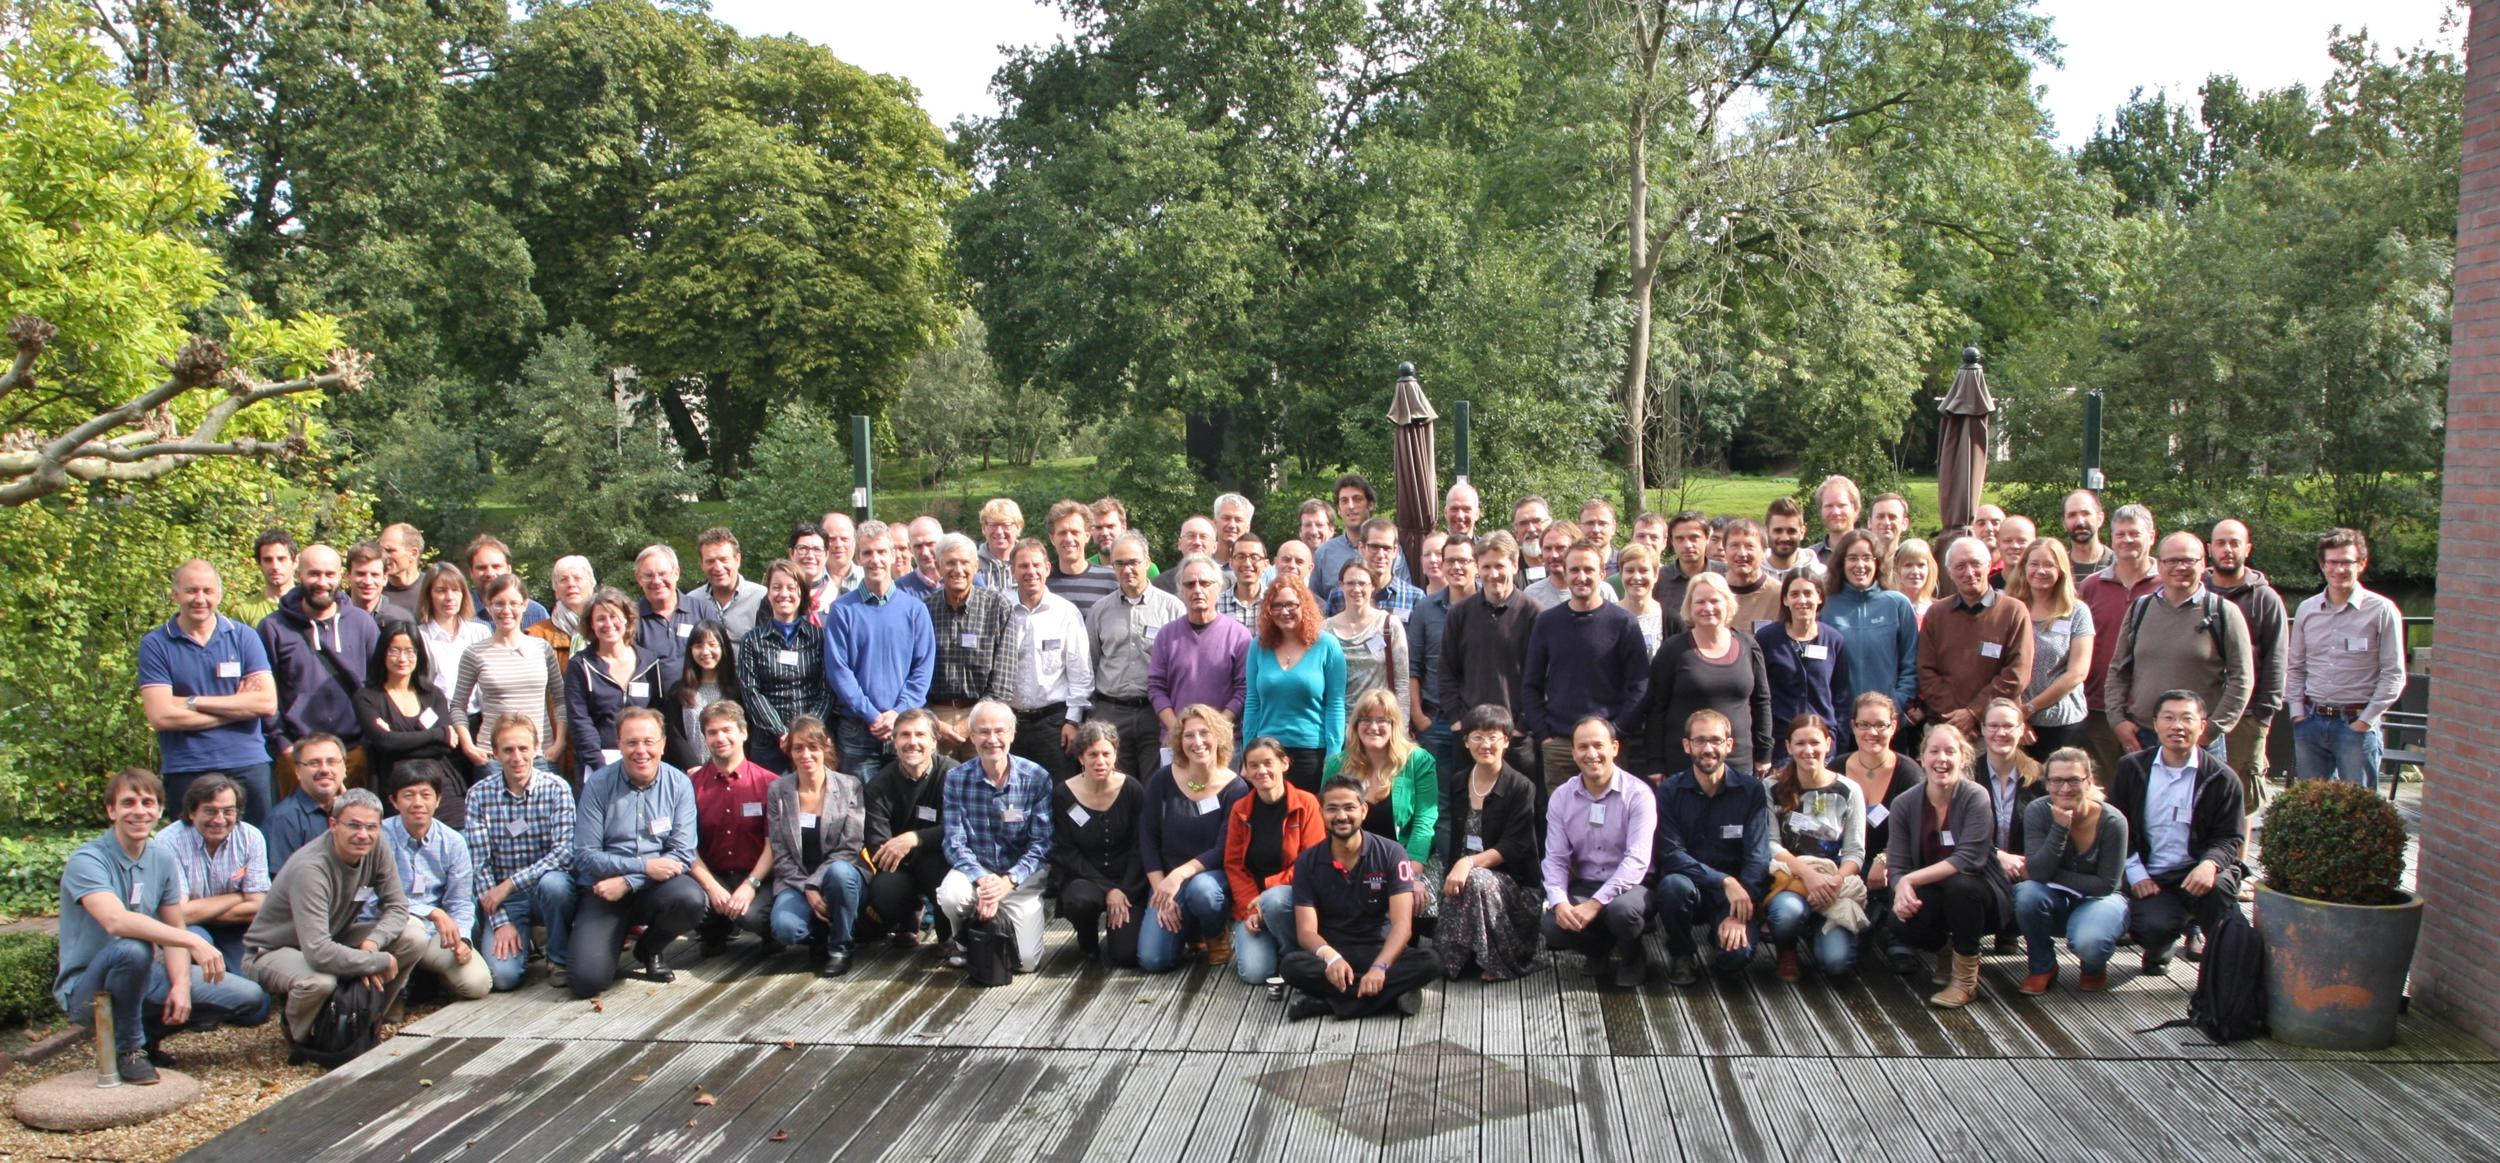 Group photo of the Conference participants